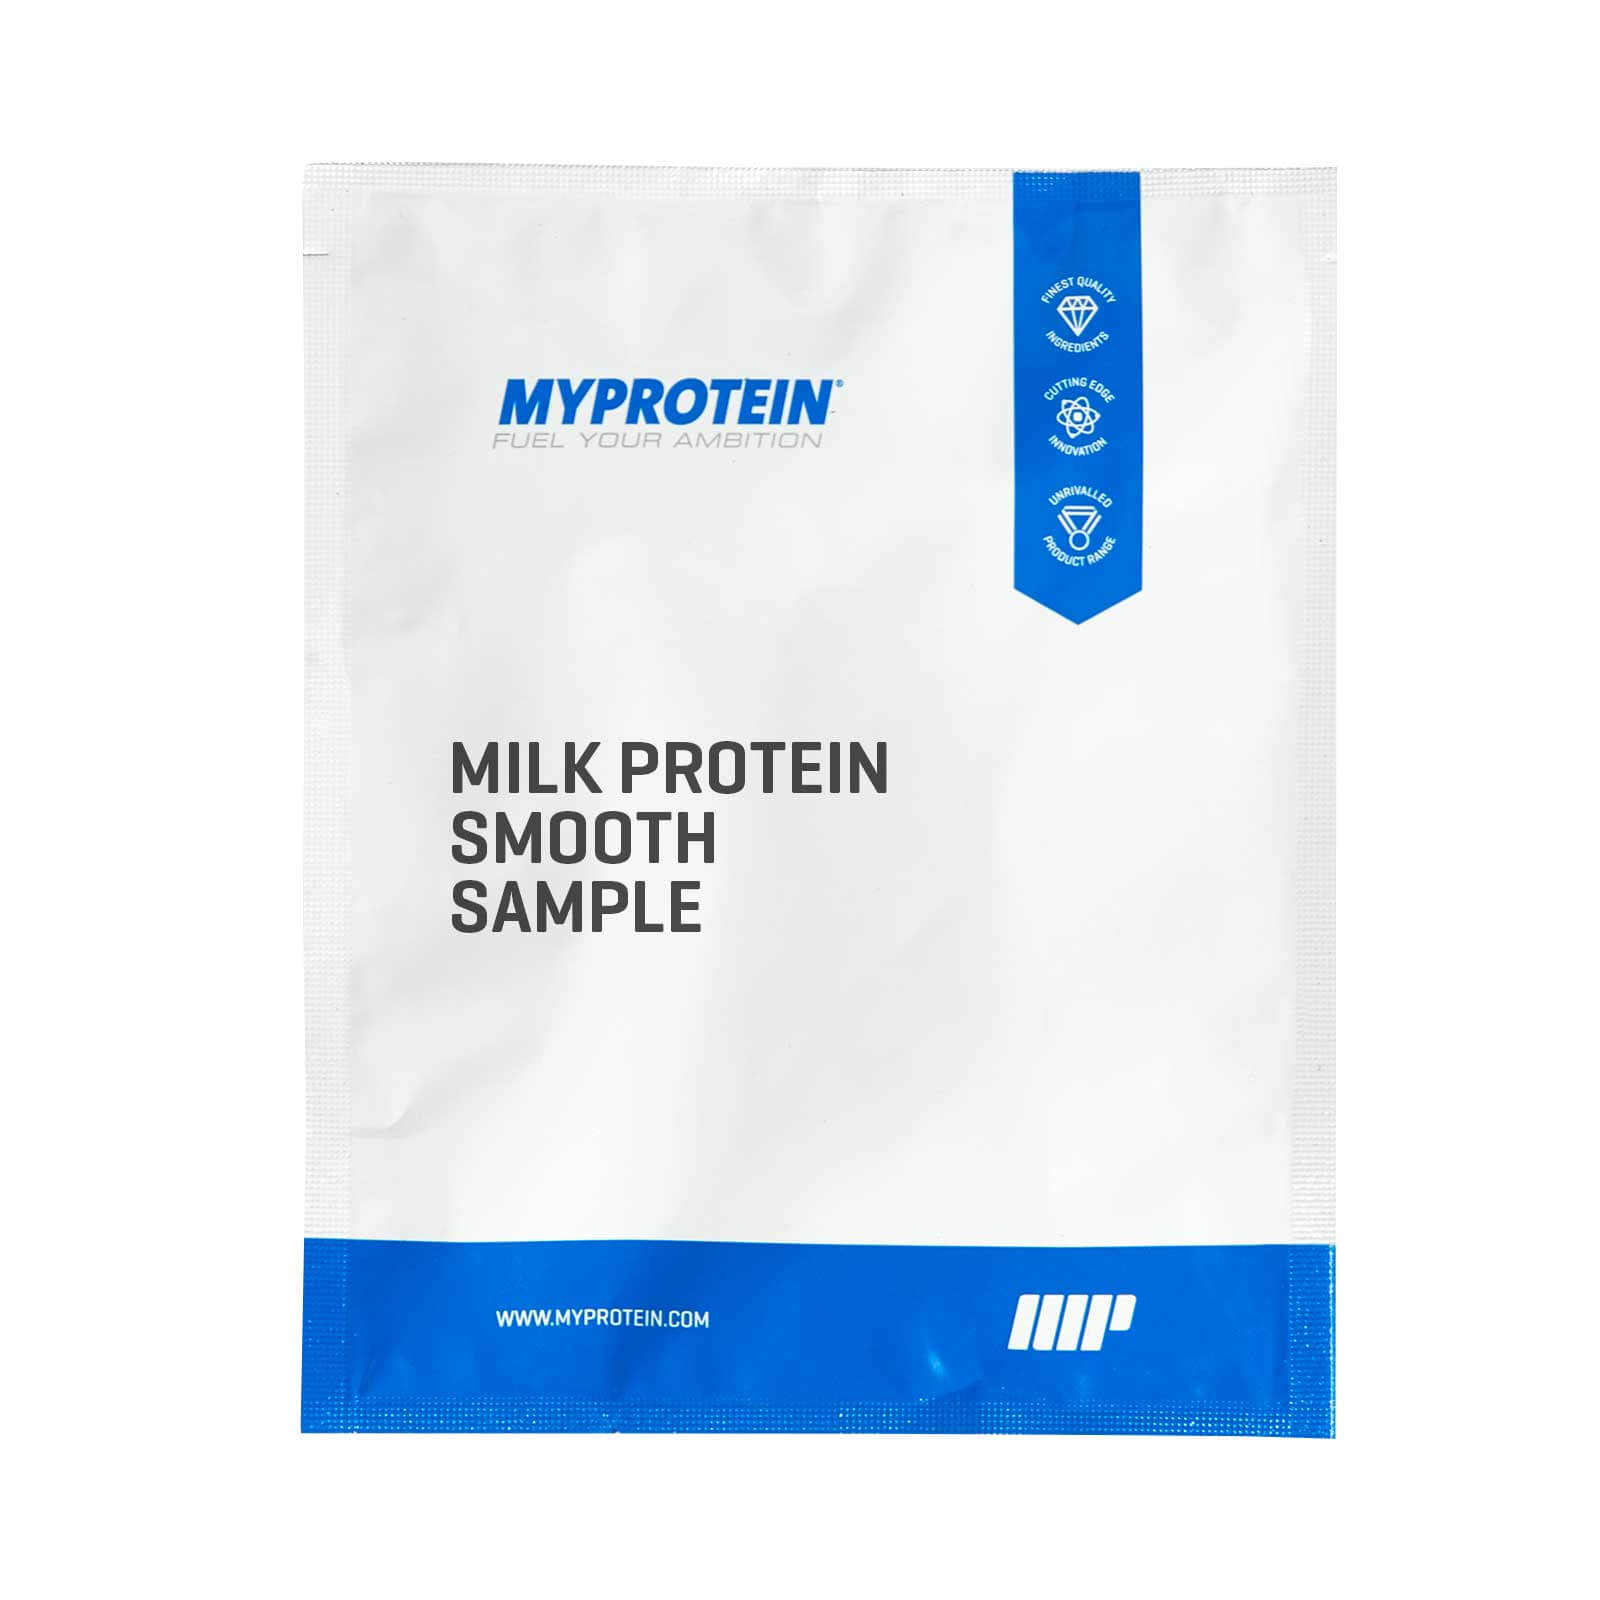 Milk Protein Smooth (Sample) - Unflavoured, 30g